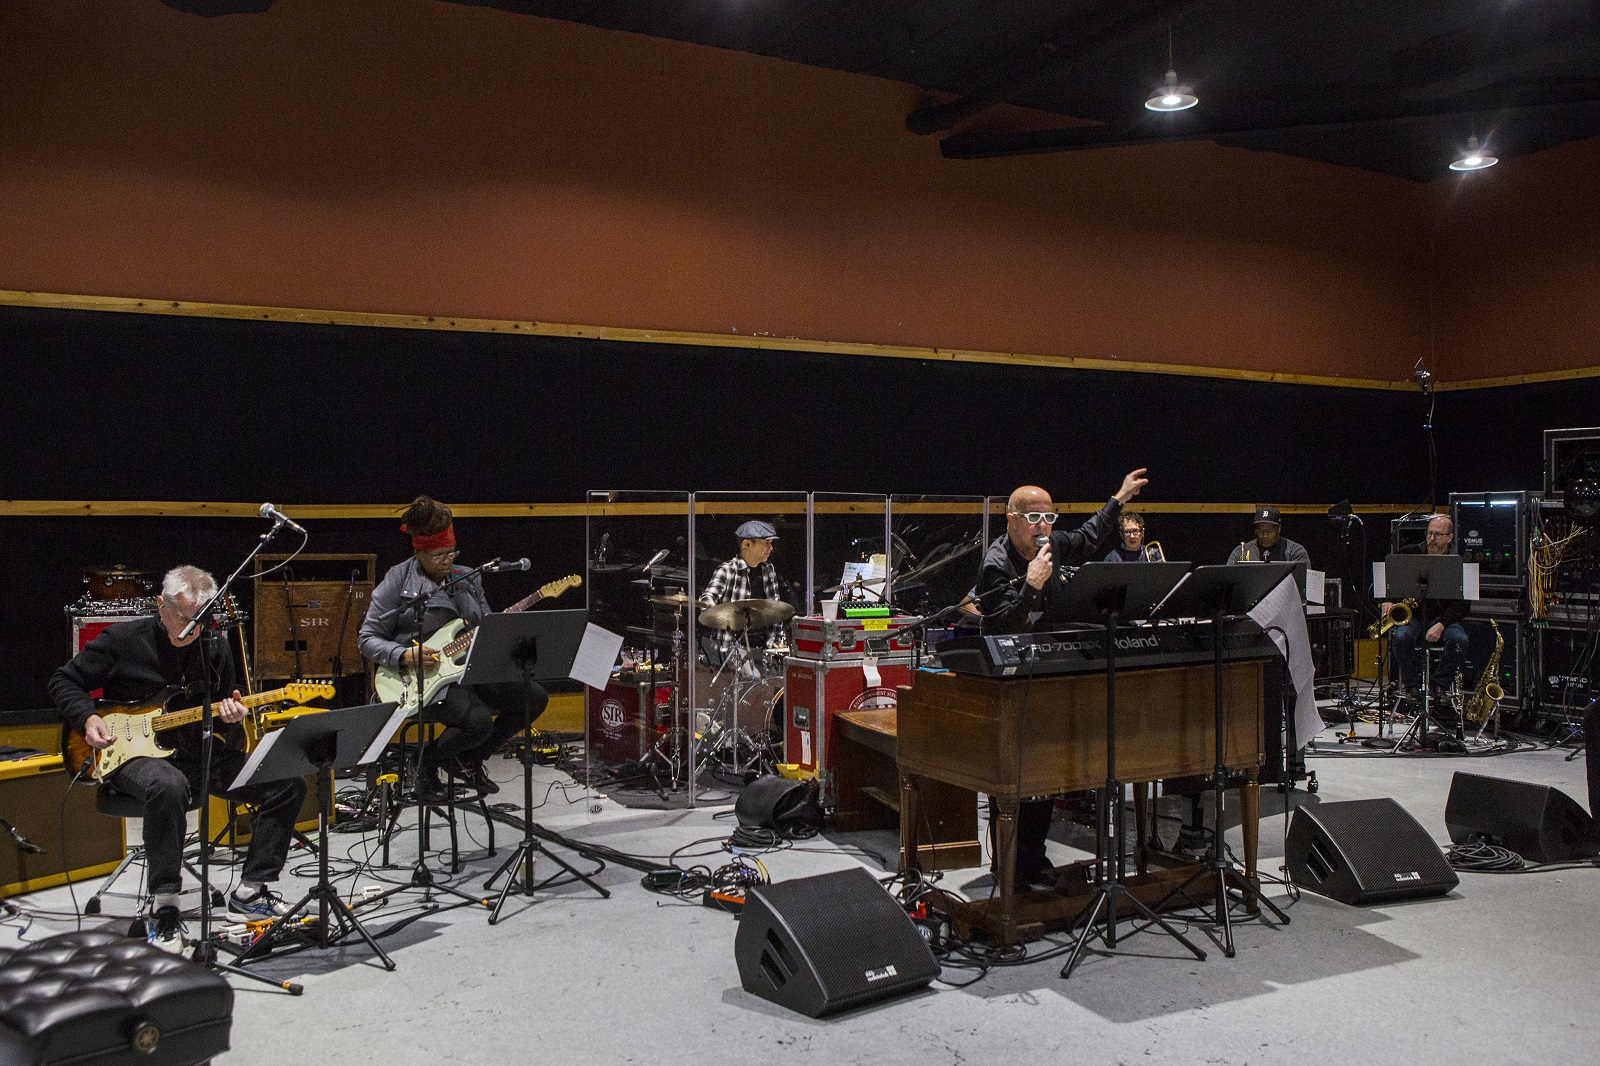 Paul Shaffer rehearses for a charity event with the World's Most Dangerous Band at SIR studios in New York earlier this year. (Hiroko Masuike/The New York Times)